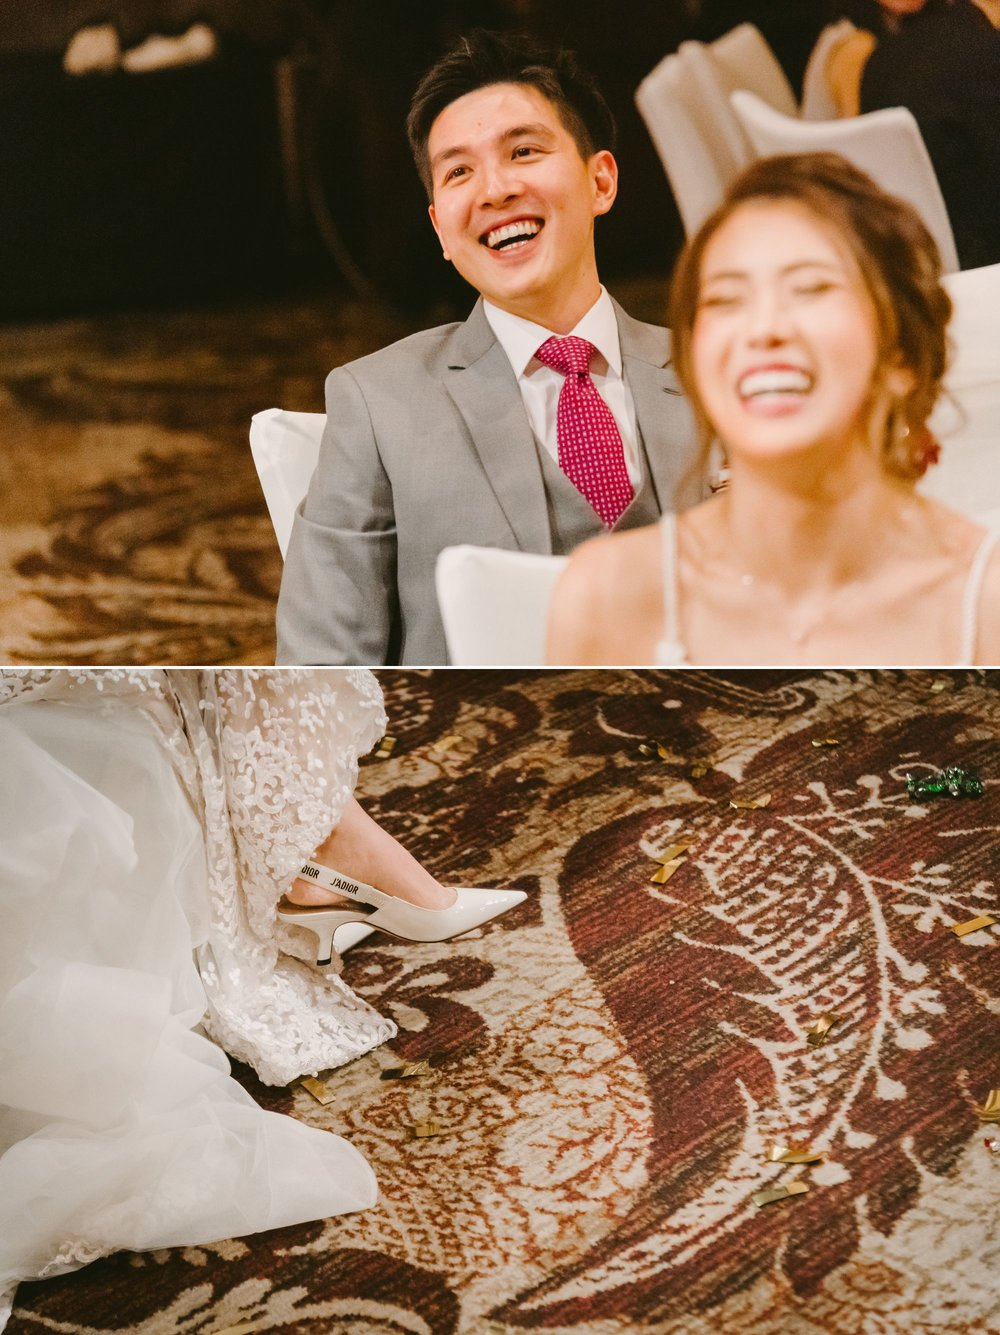 st_regis_singapore_wedding 41.jpg